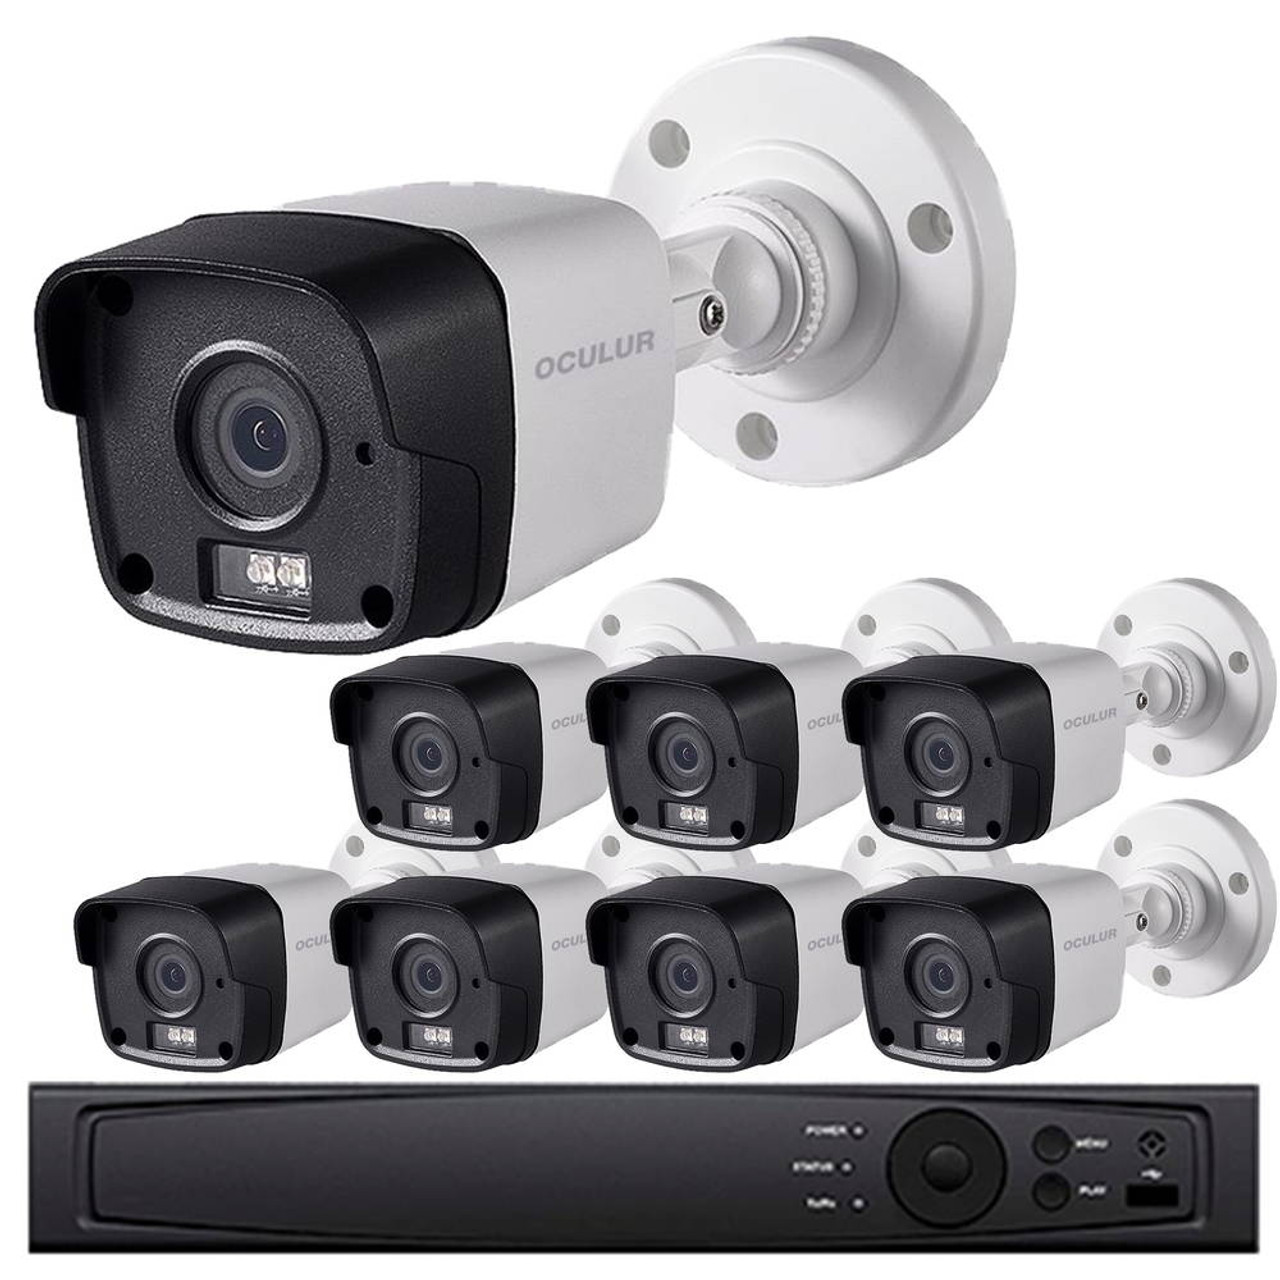 Gas Station Security Camera System - 8-Camera, 1080p HD Resolution, Wide  Angle Field of View, 65ft  Night Vision, Weatherproof, 3-yr warranty